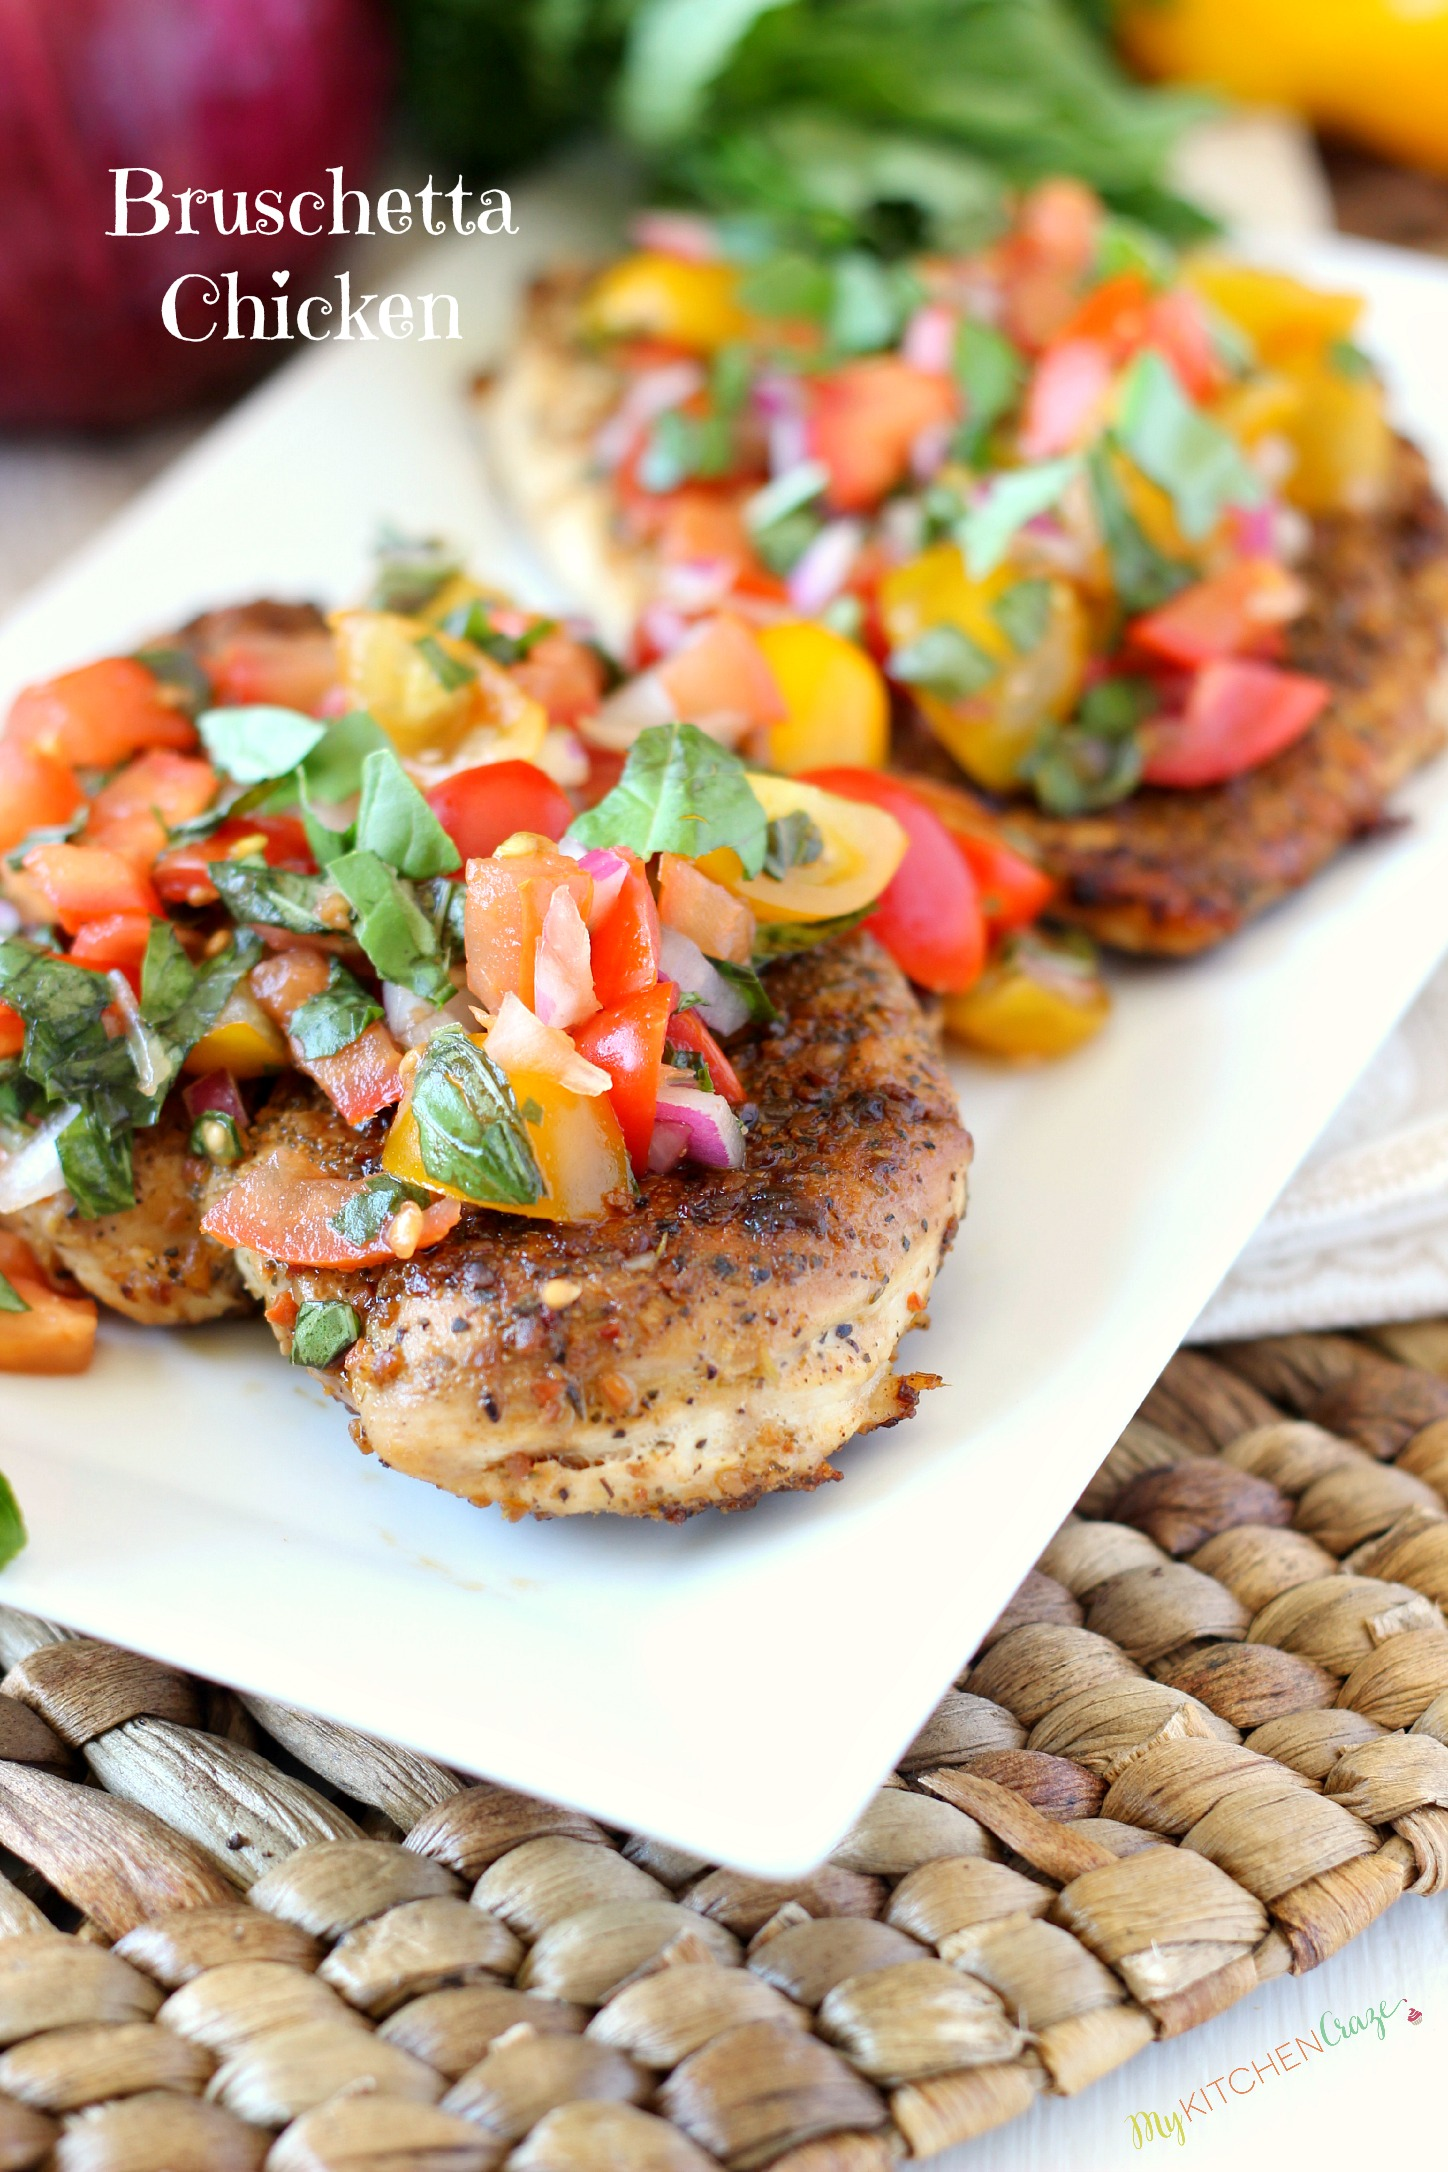 Bruschetta Chicken ~ mykitchencraze.com ~ A delicious and flavorful meal that the whole family will love.